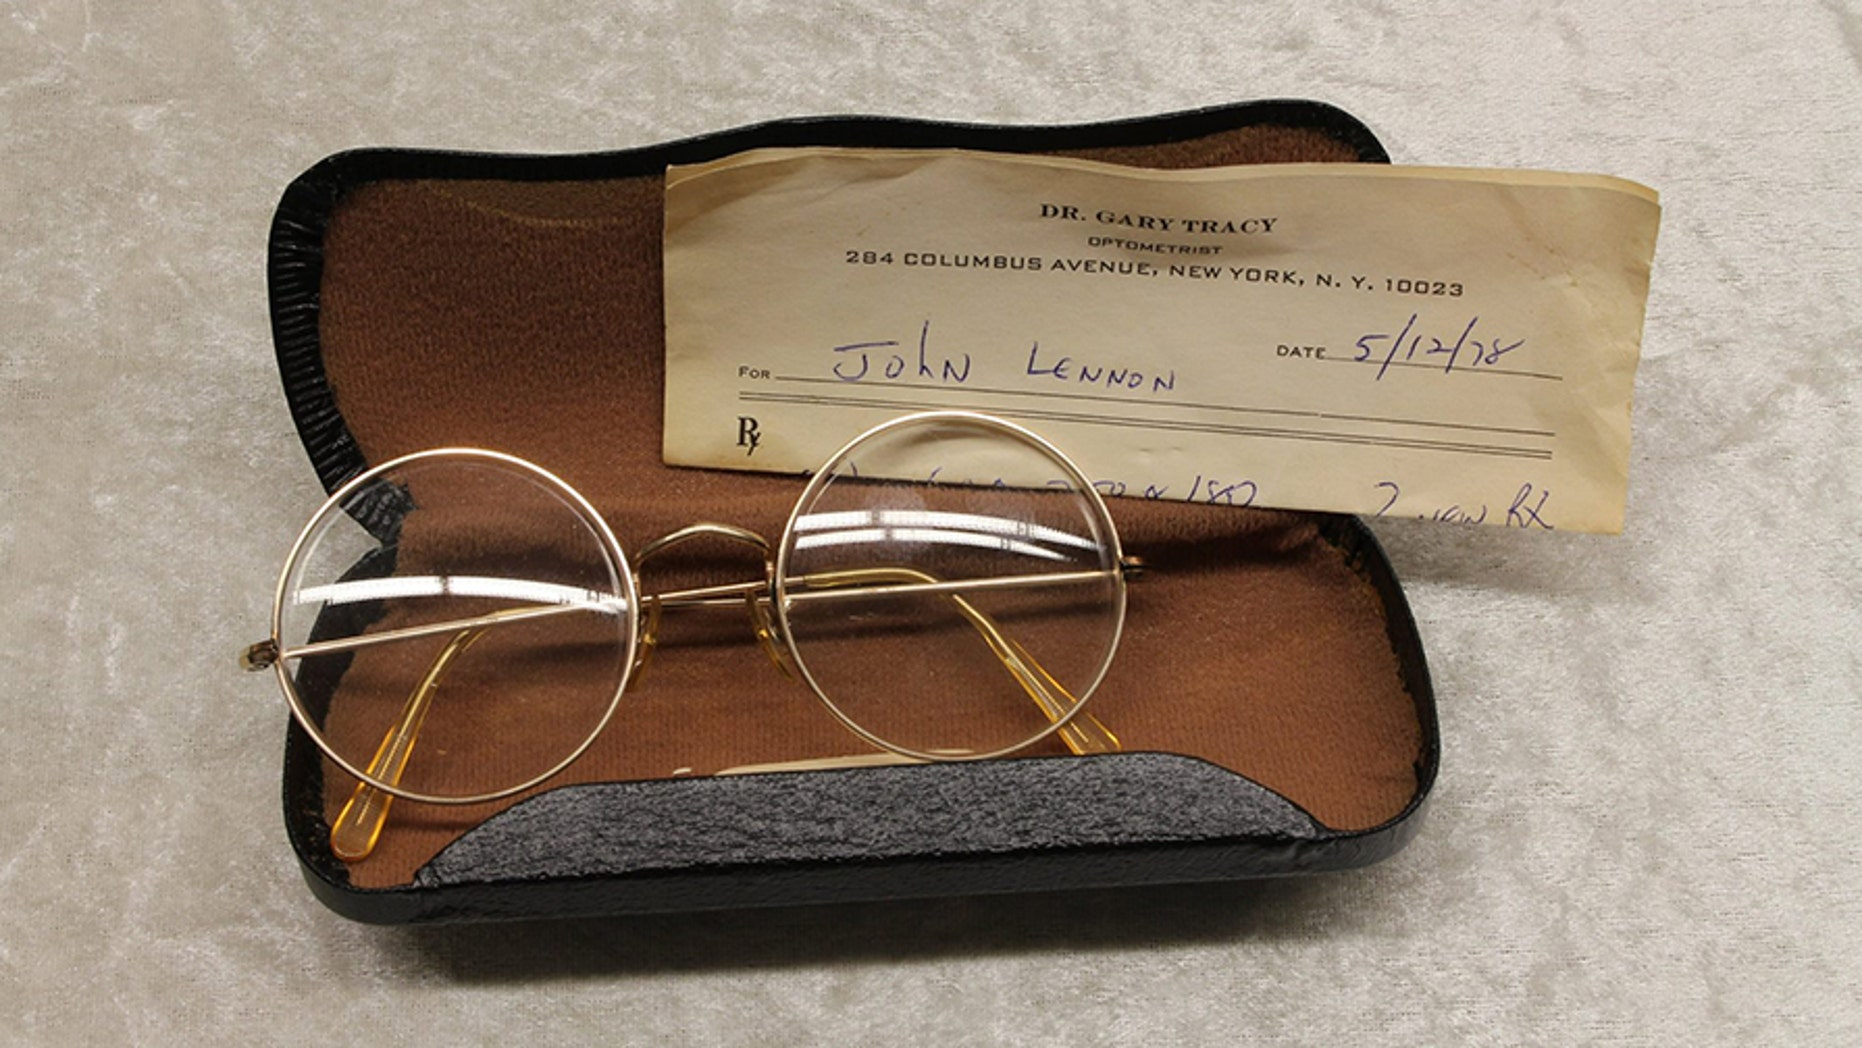 2e9e9ae255 John Lennon s glasses with a prescription from optometrist Gary Tracy were  displayed at the police headquarters